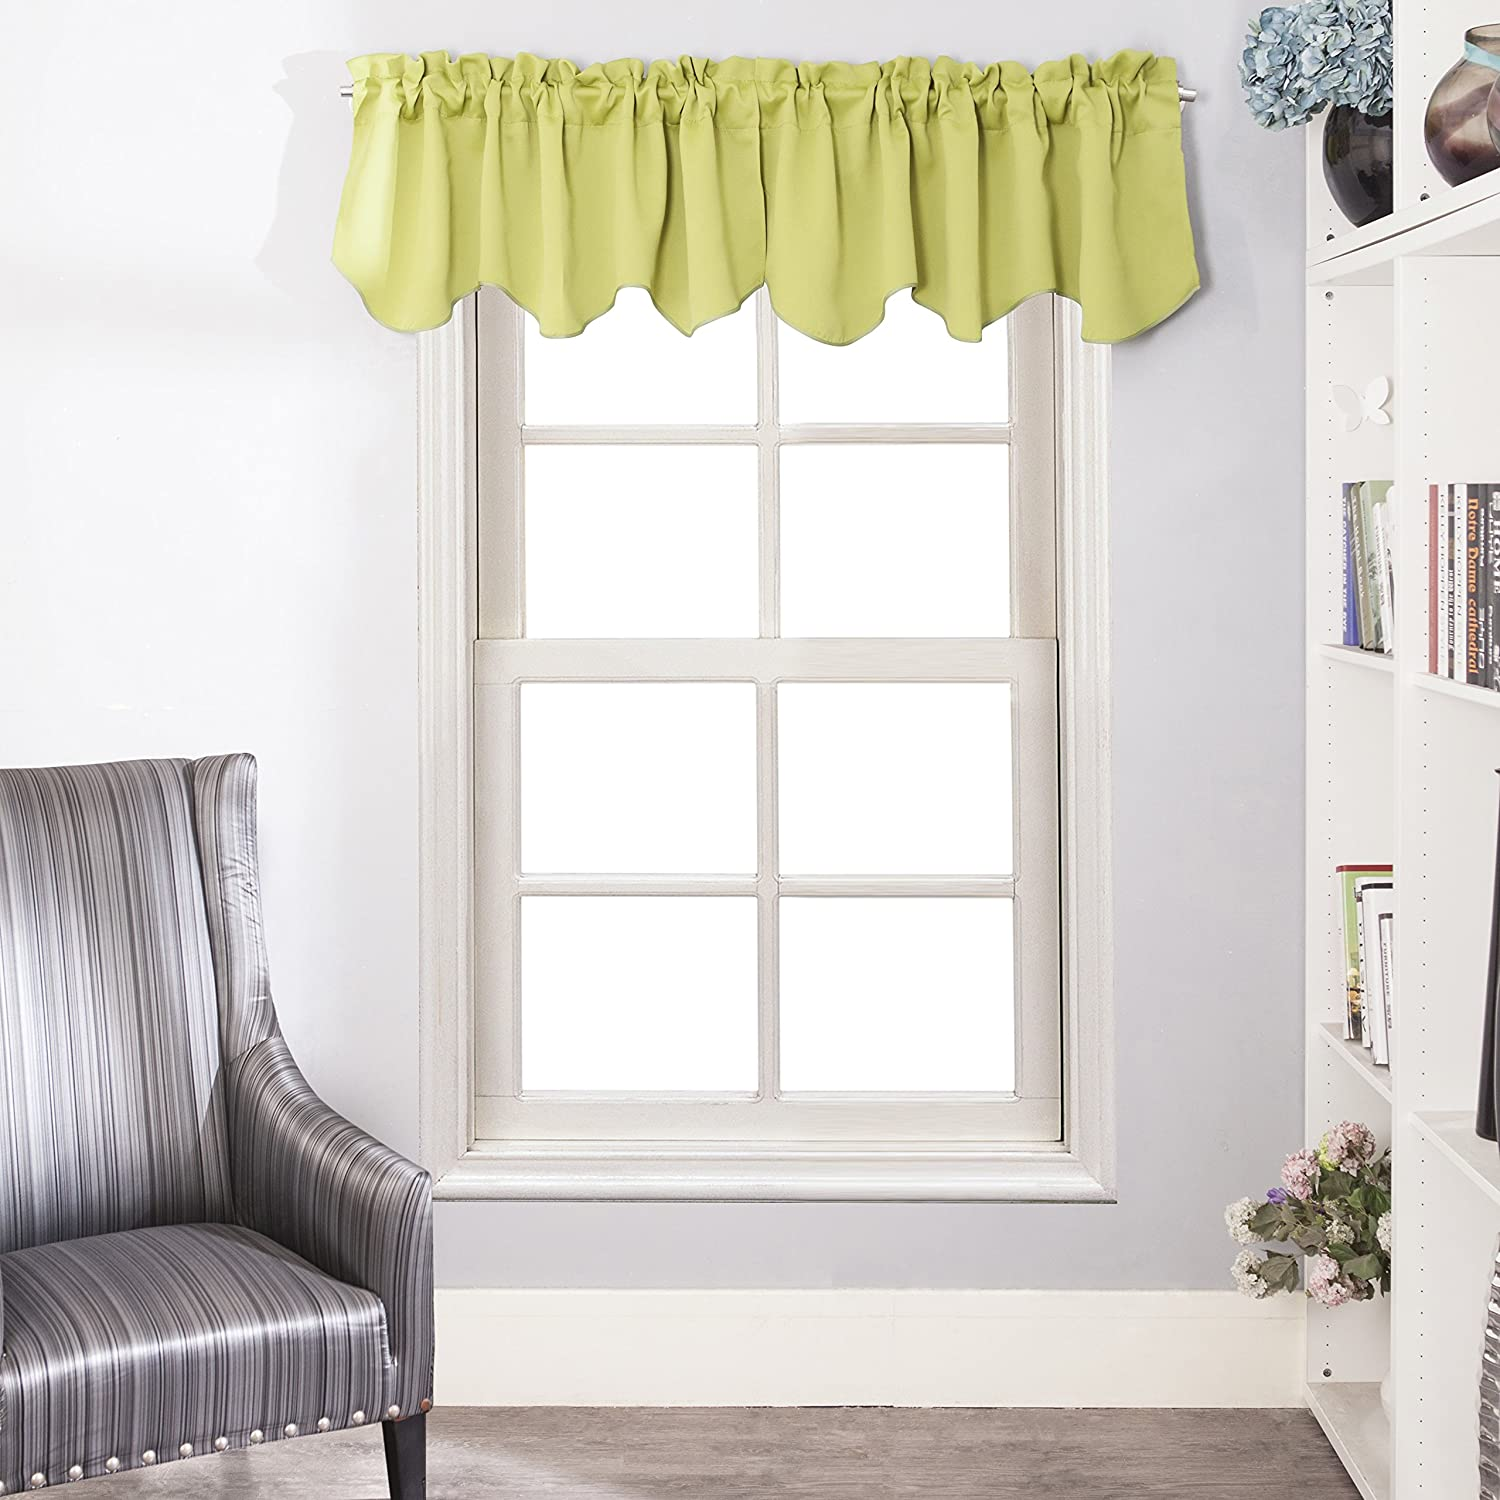 topic hgtv design decorating window valances treatments videos valance